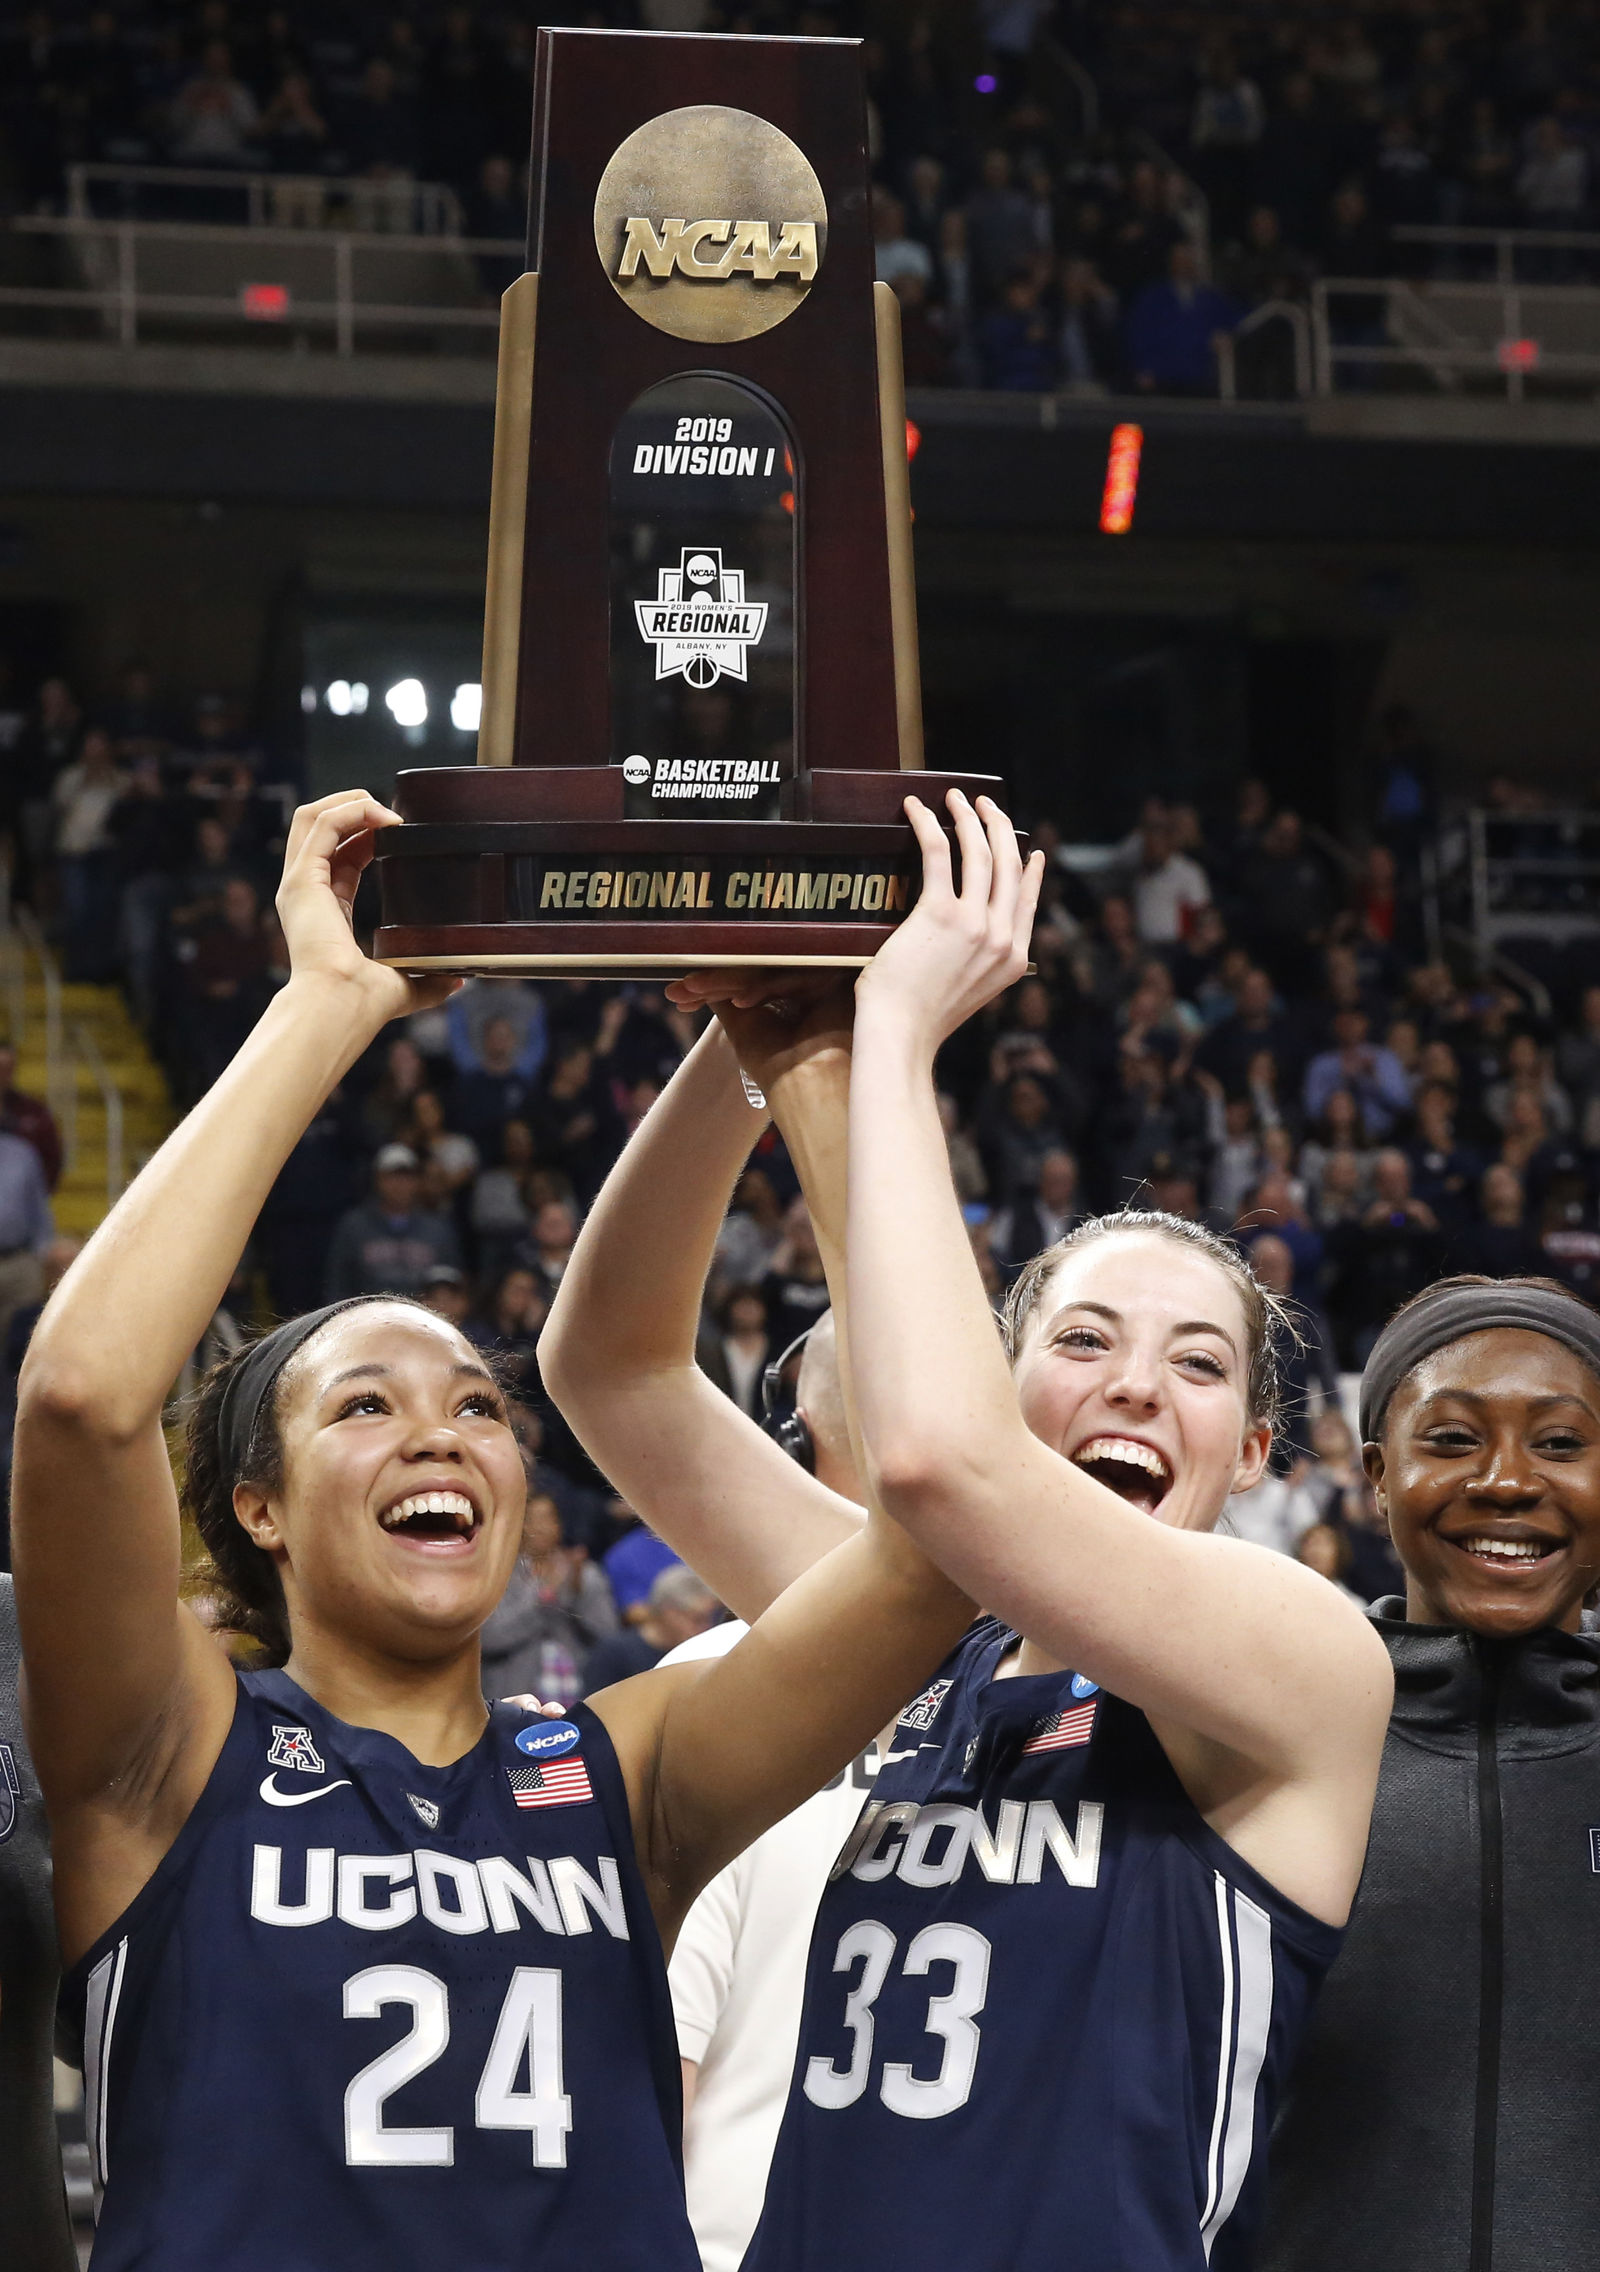 Connecticut forward Napheesa Collier (24) and guard Katie Lou Samuelson (33) hold up the trophy after defeating Louisville in a regional championship final in the NCAA women's college basketball tournament, Sunday, March 31, 2019, in Albany, N.Y. (AP Photo/Kathy Willens)